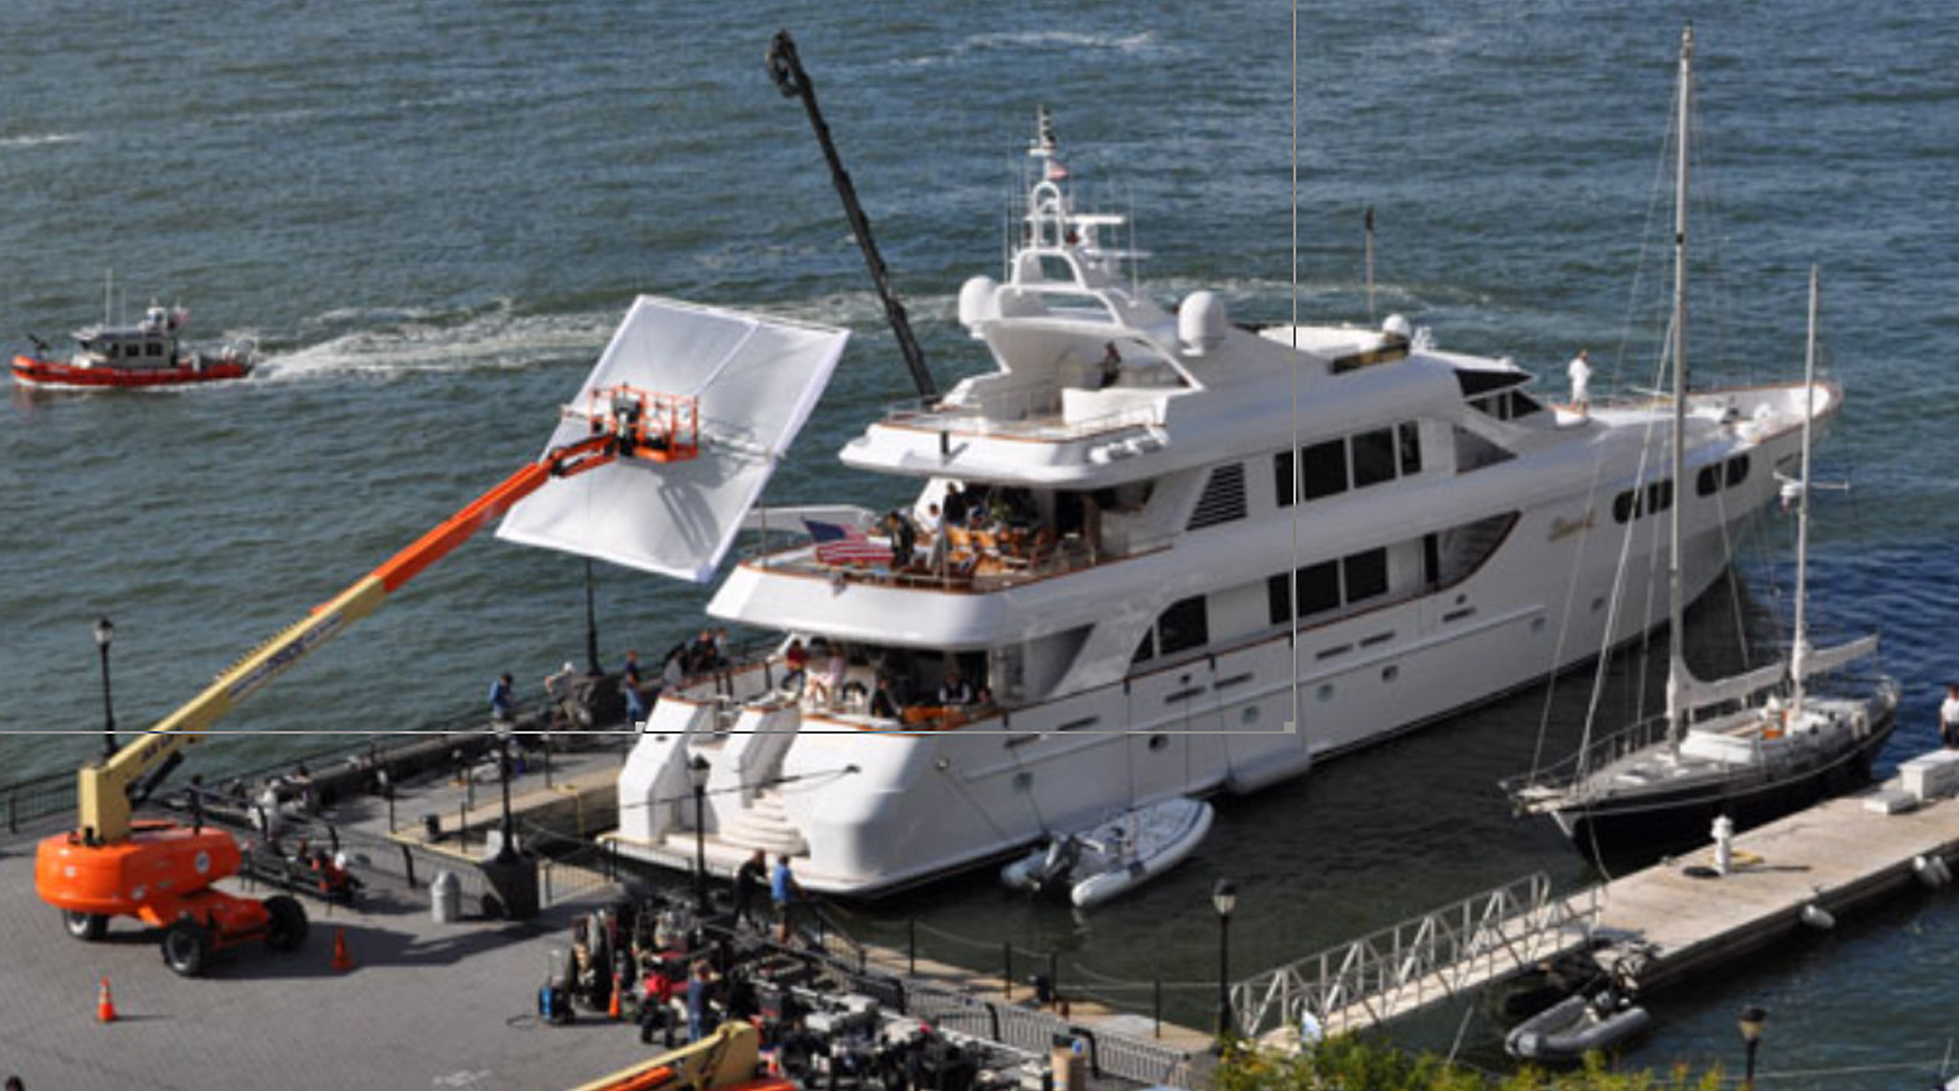 filming wolf of wall street in north cove marina